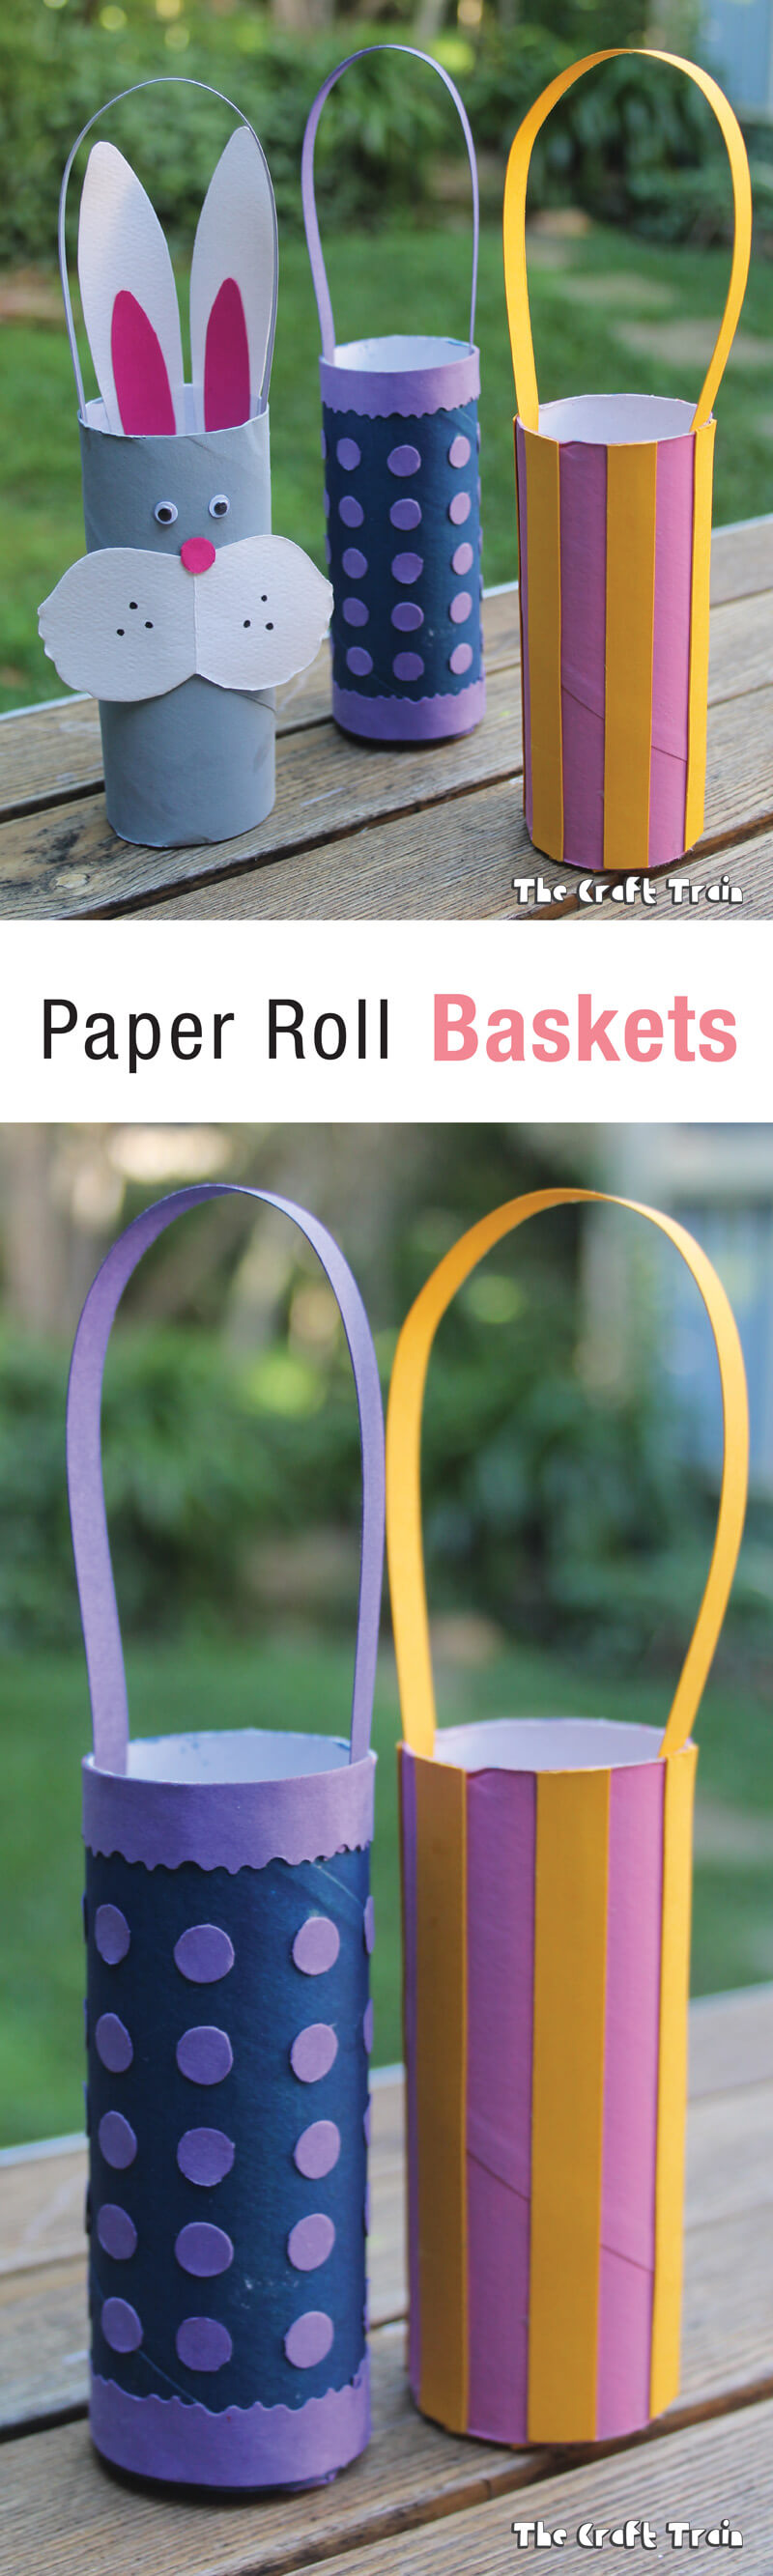 Paper roll Easter baskets - repurpose paper rolls into cute, decorated Easter baskets for kids #eastercraft #recyclingcraft #paperrrolls #kidscrafts #crafts